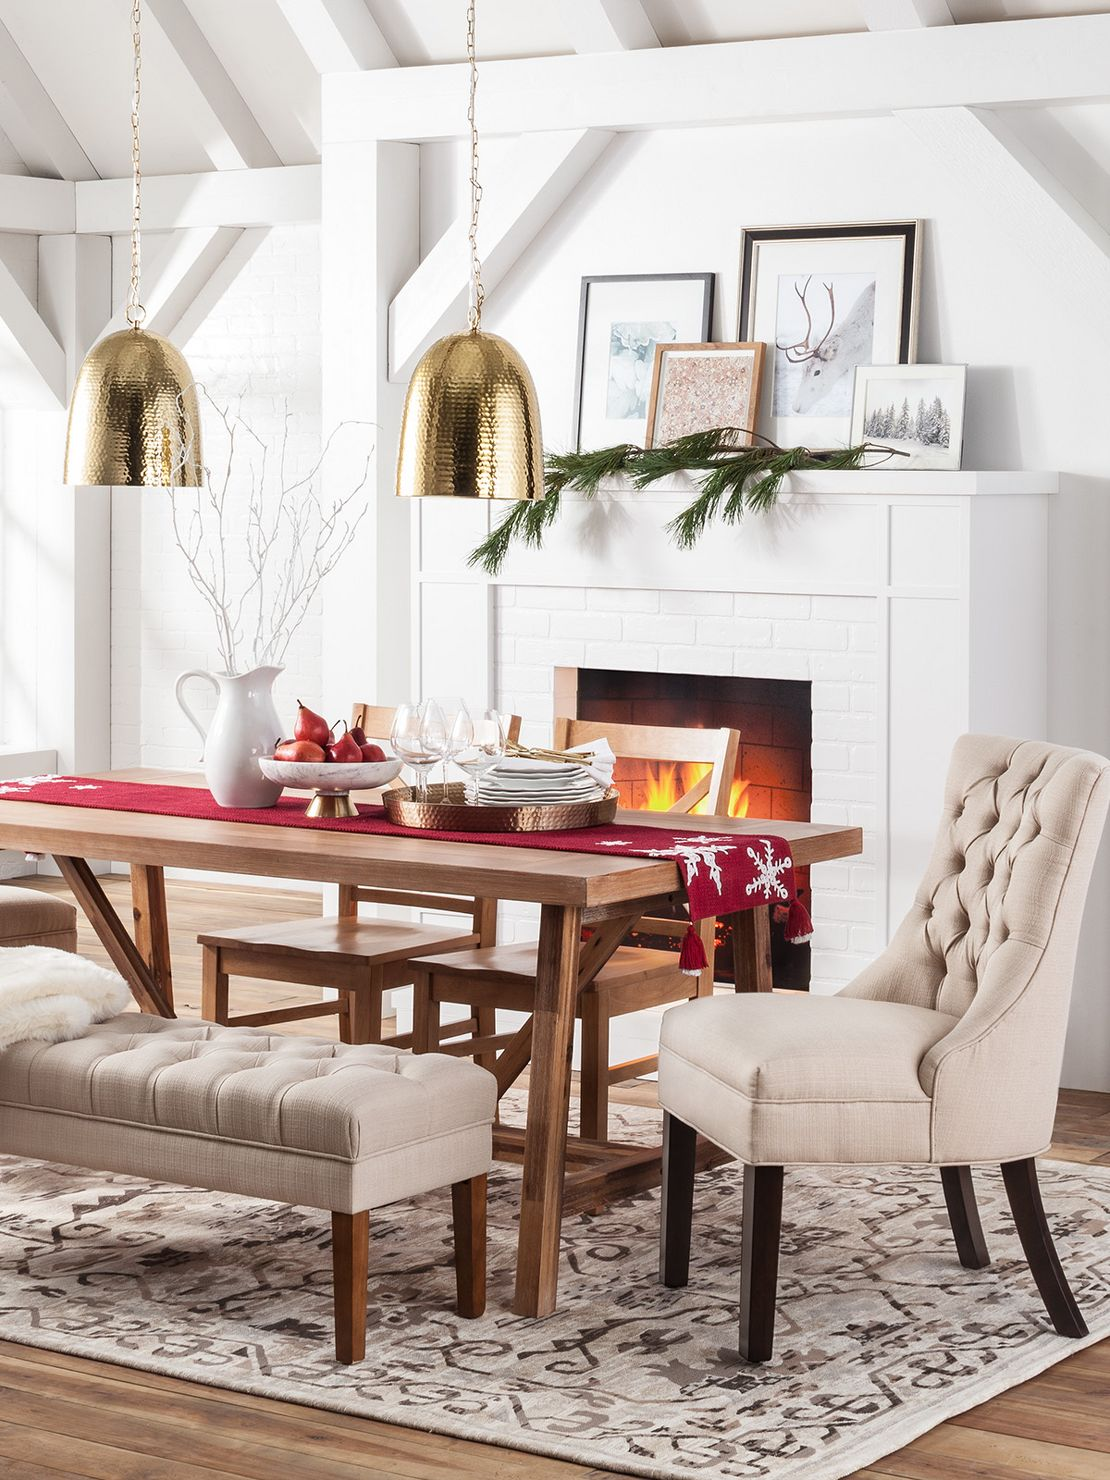 impress guests for less threshold dining furniture - Dining Room Set Target